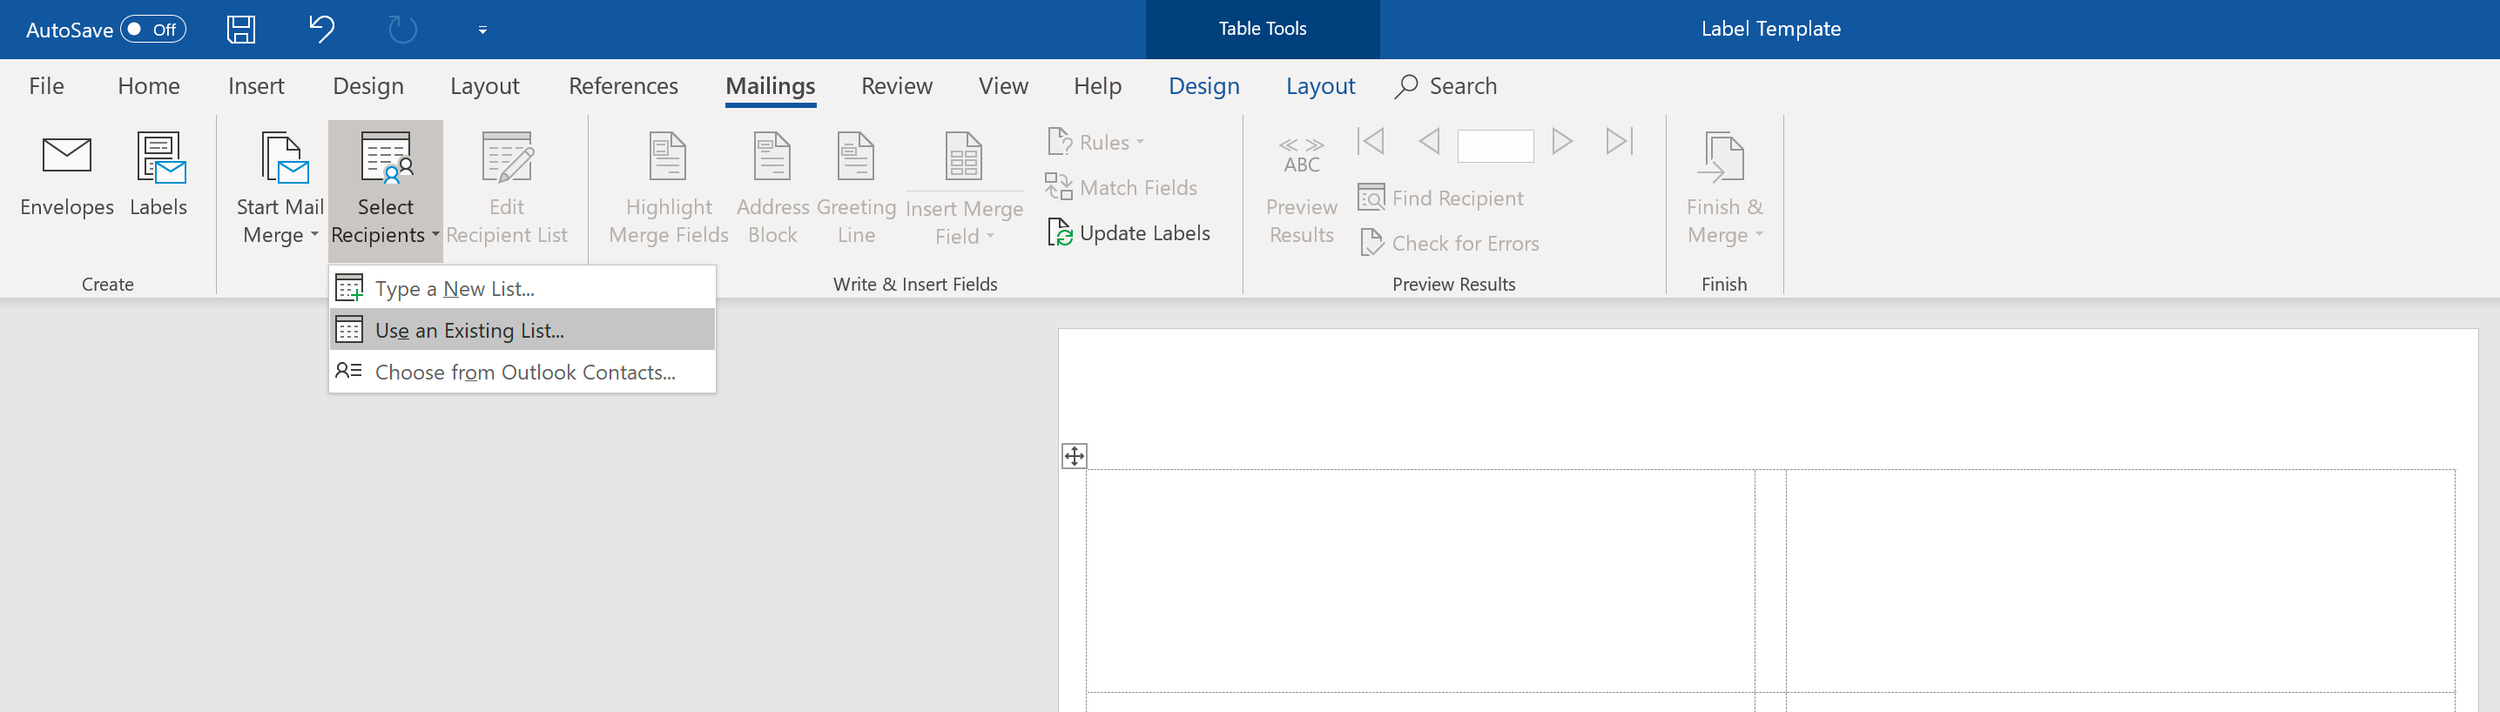 Select the Excel file to mail merge